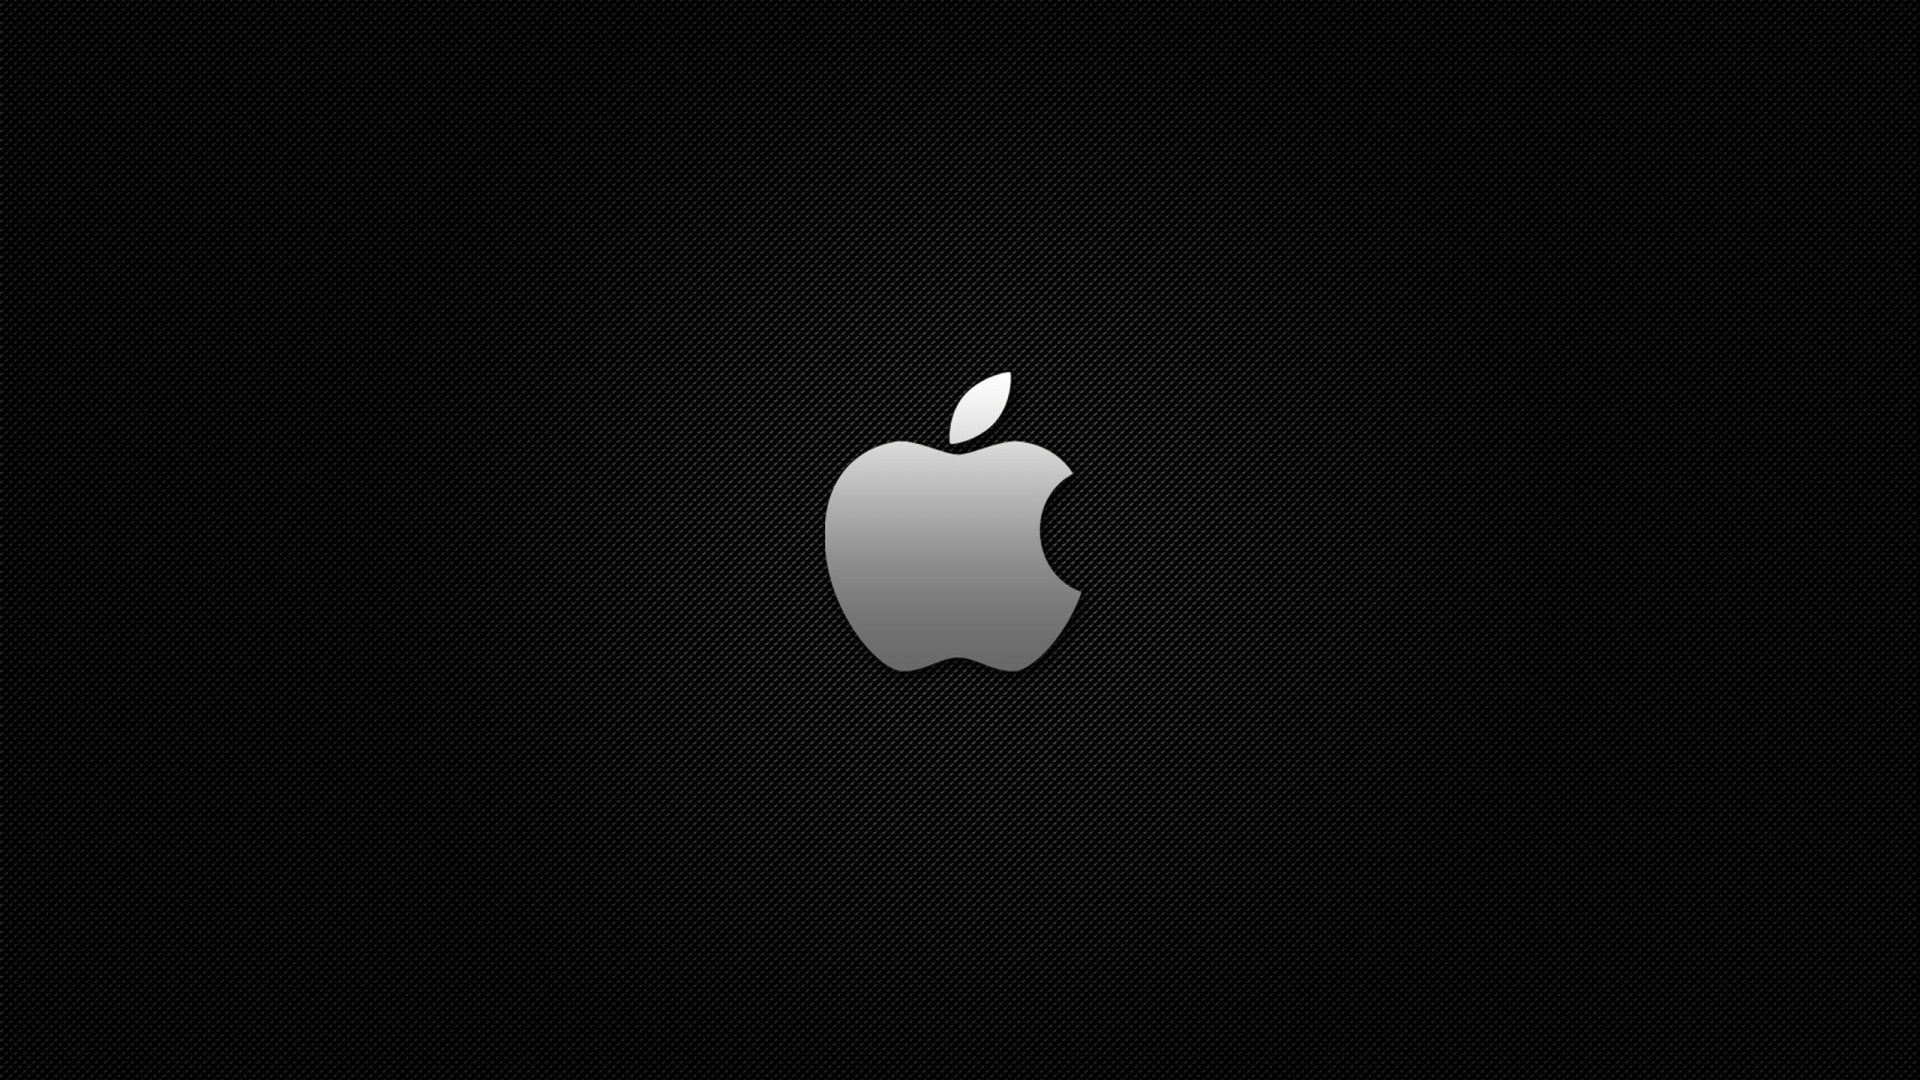 Black Apple Logo Wallpapers HD Wallpaper Apple logo